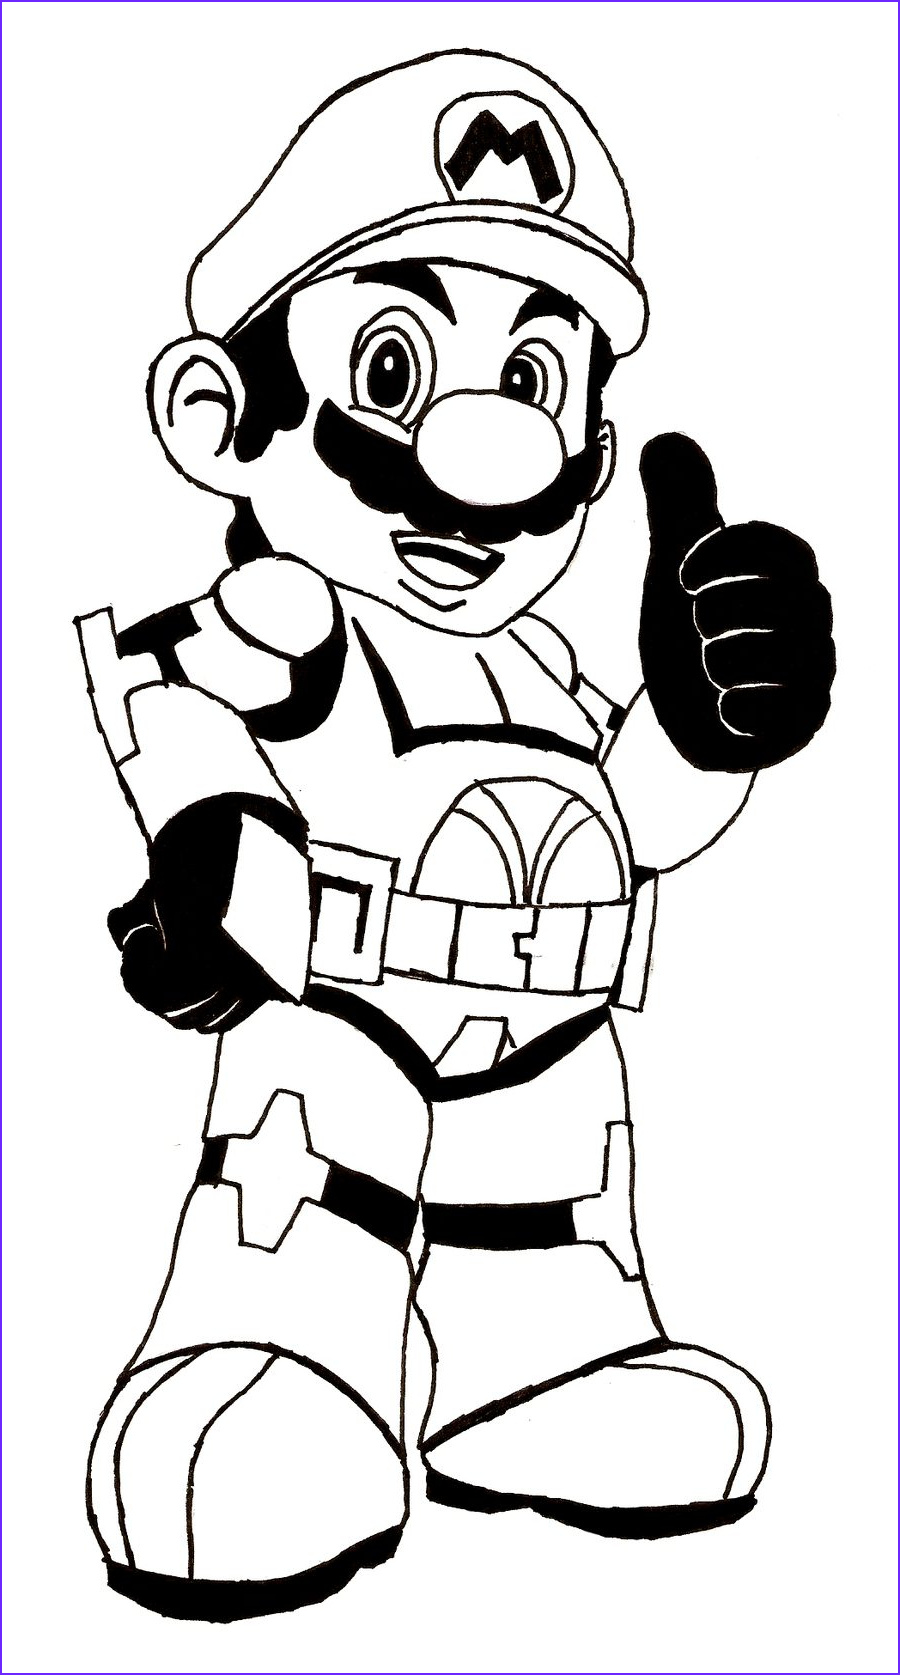 mario and luigi free coloring pages